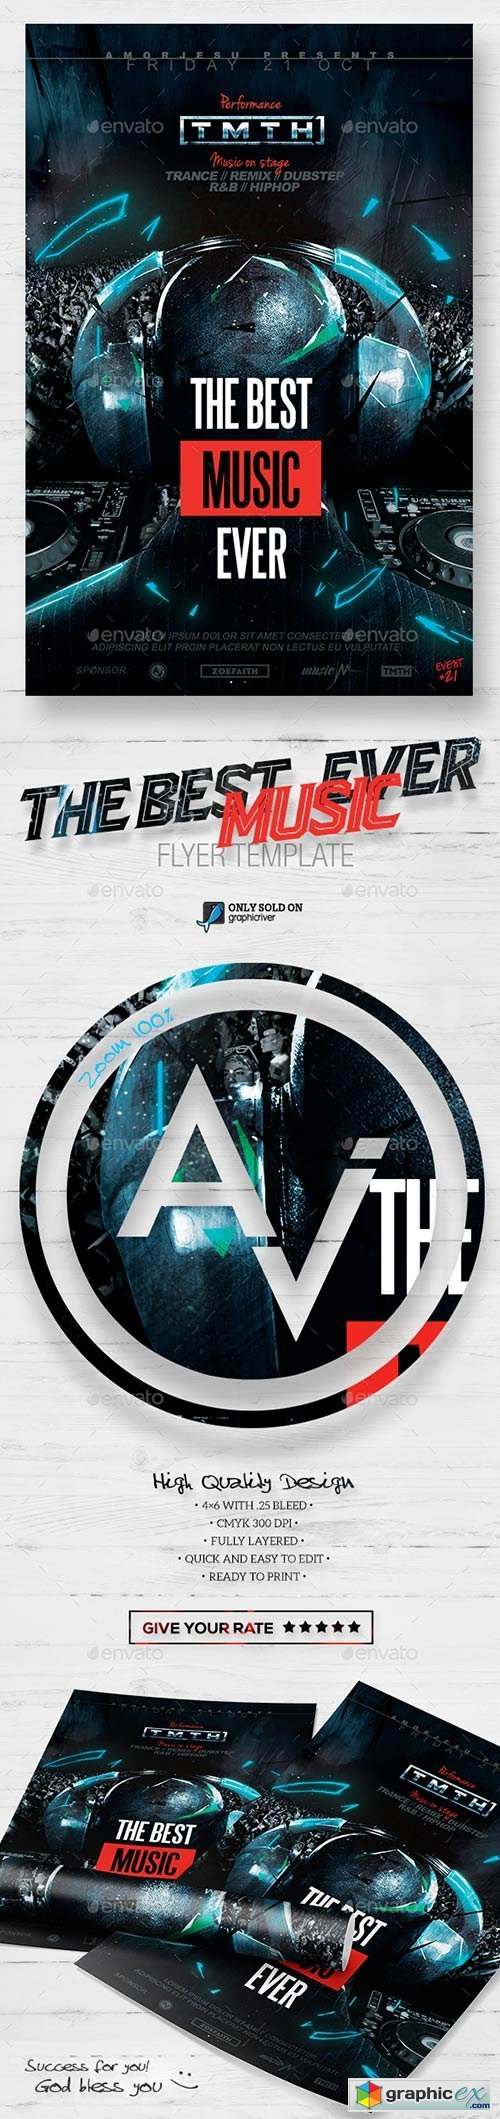 The Music Ever Flyer Template